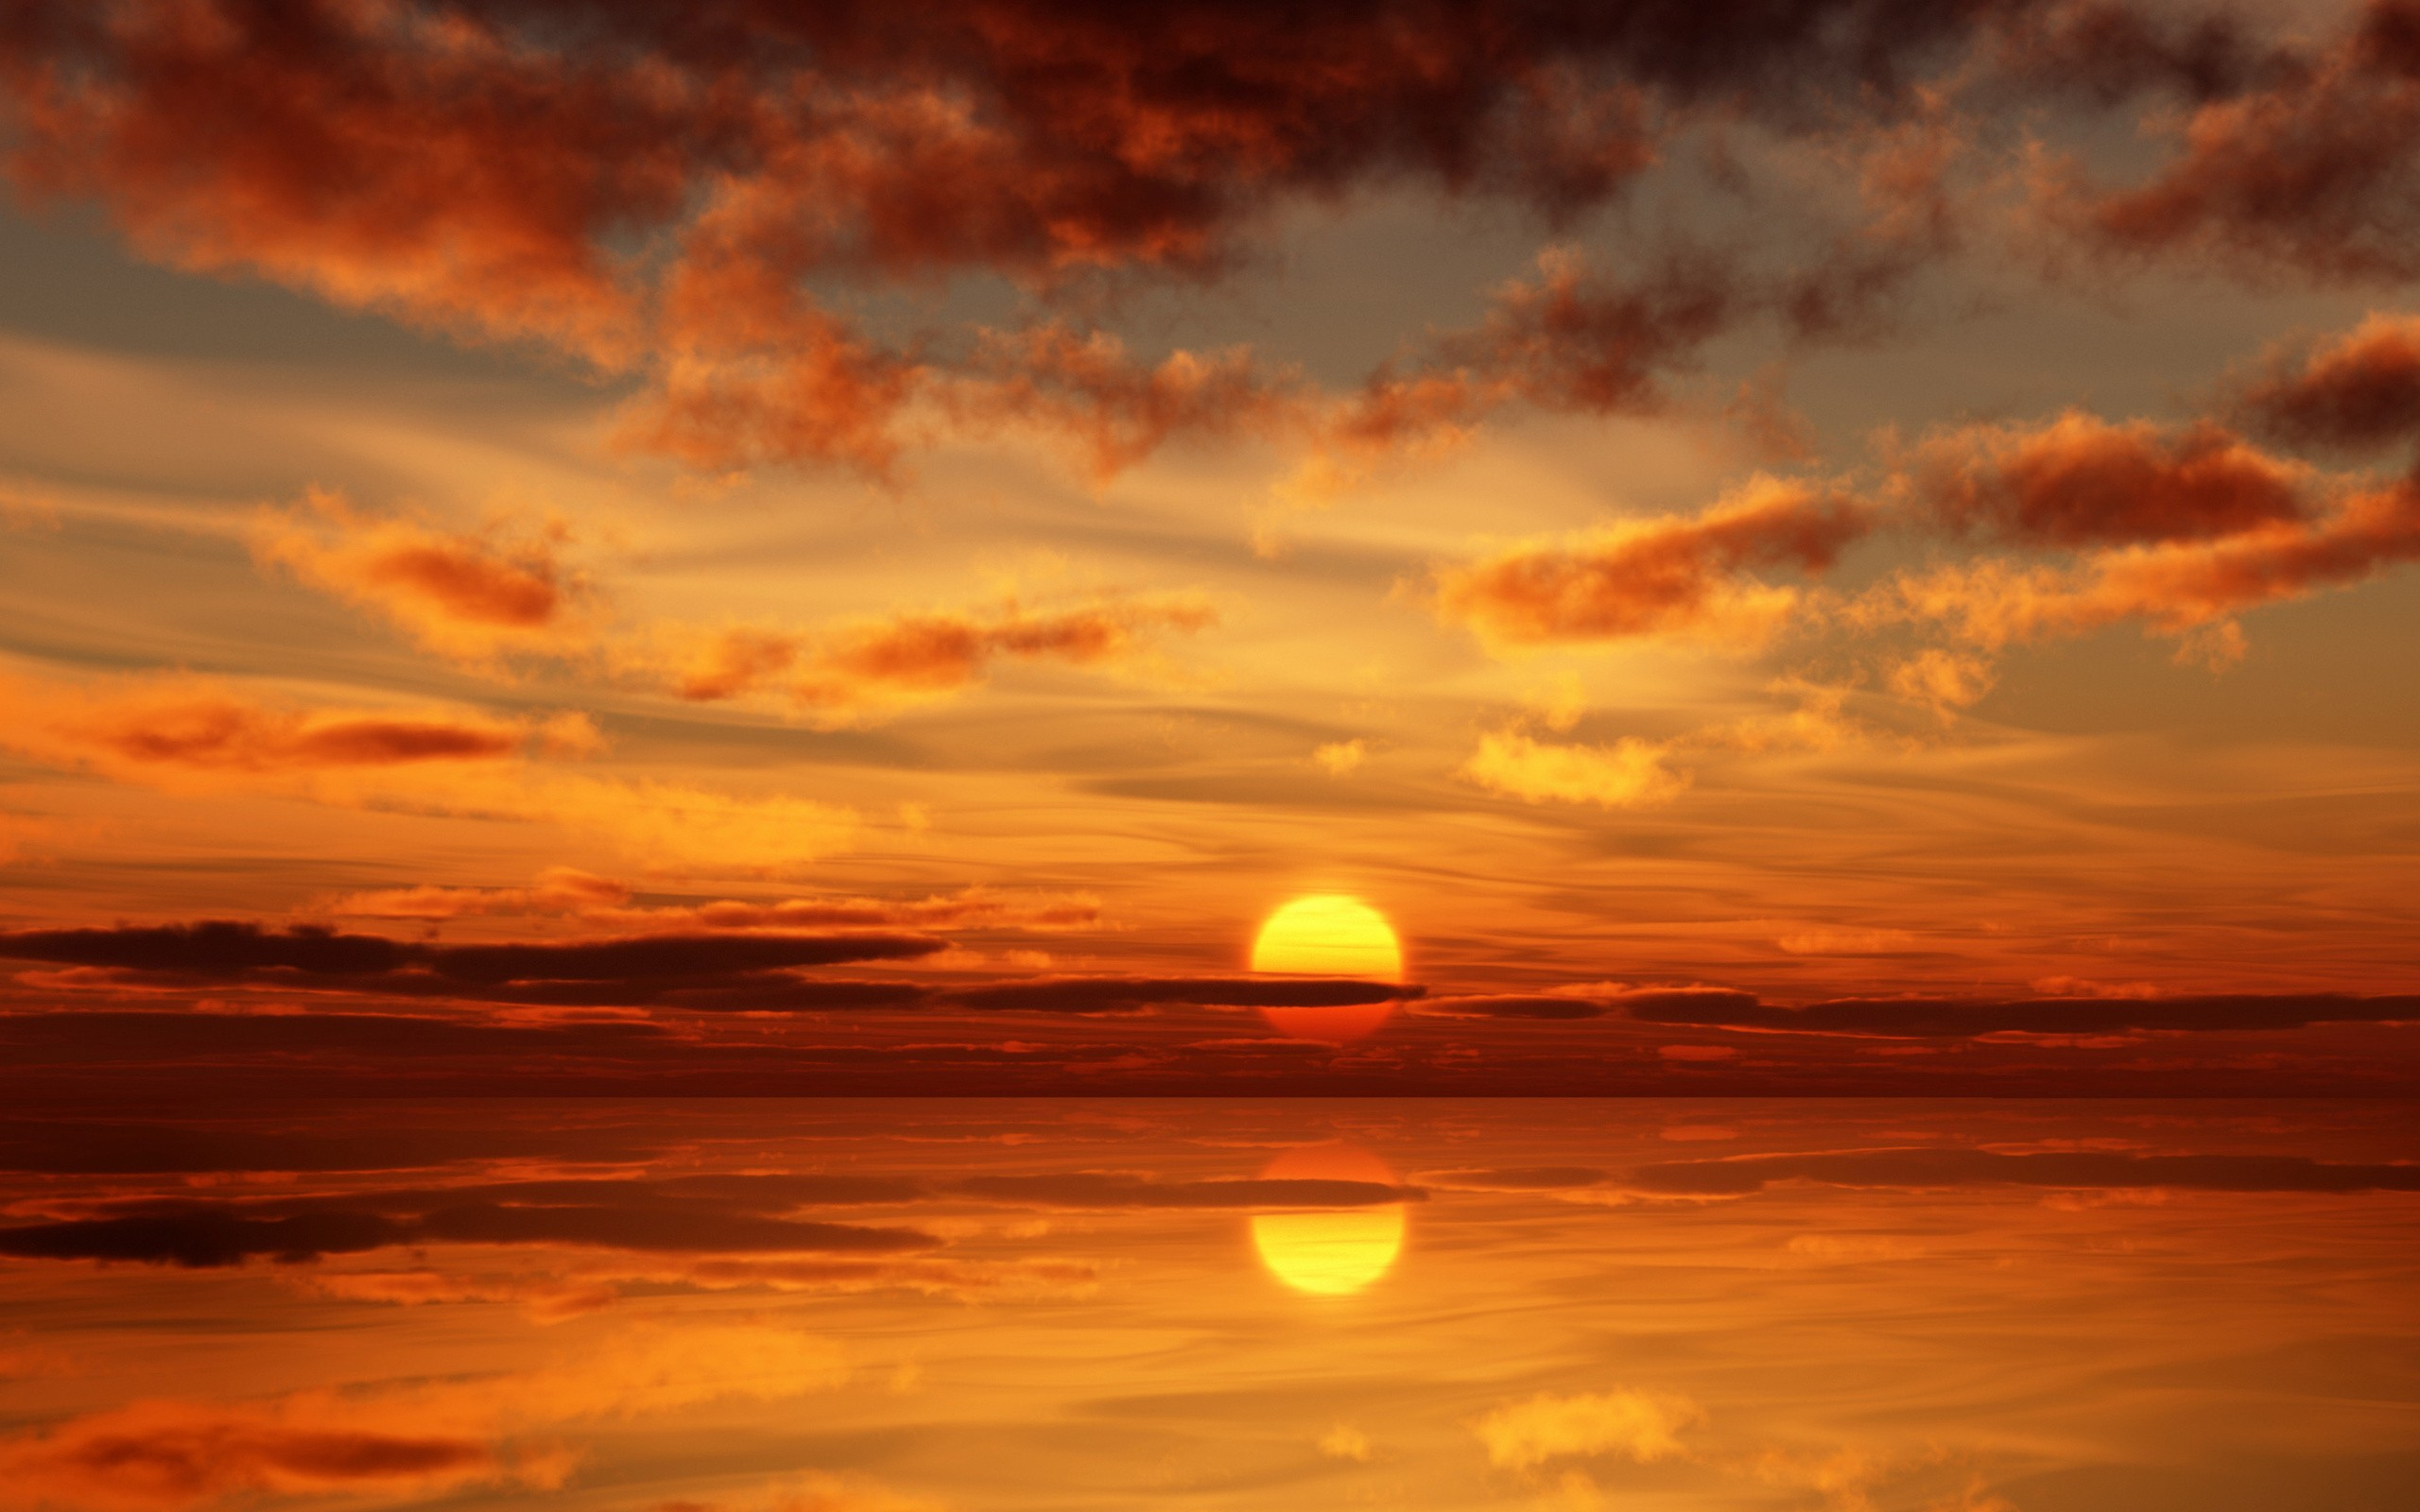 Sunset Ocean Wallpaper 2560x1600 Sunset Ocean Landscapes Nature 2560x1600